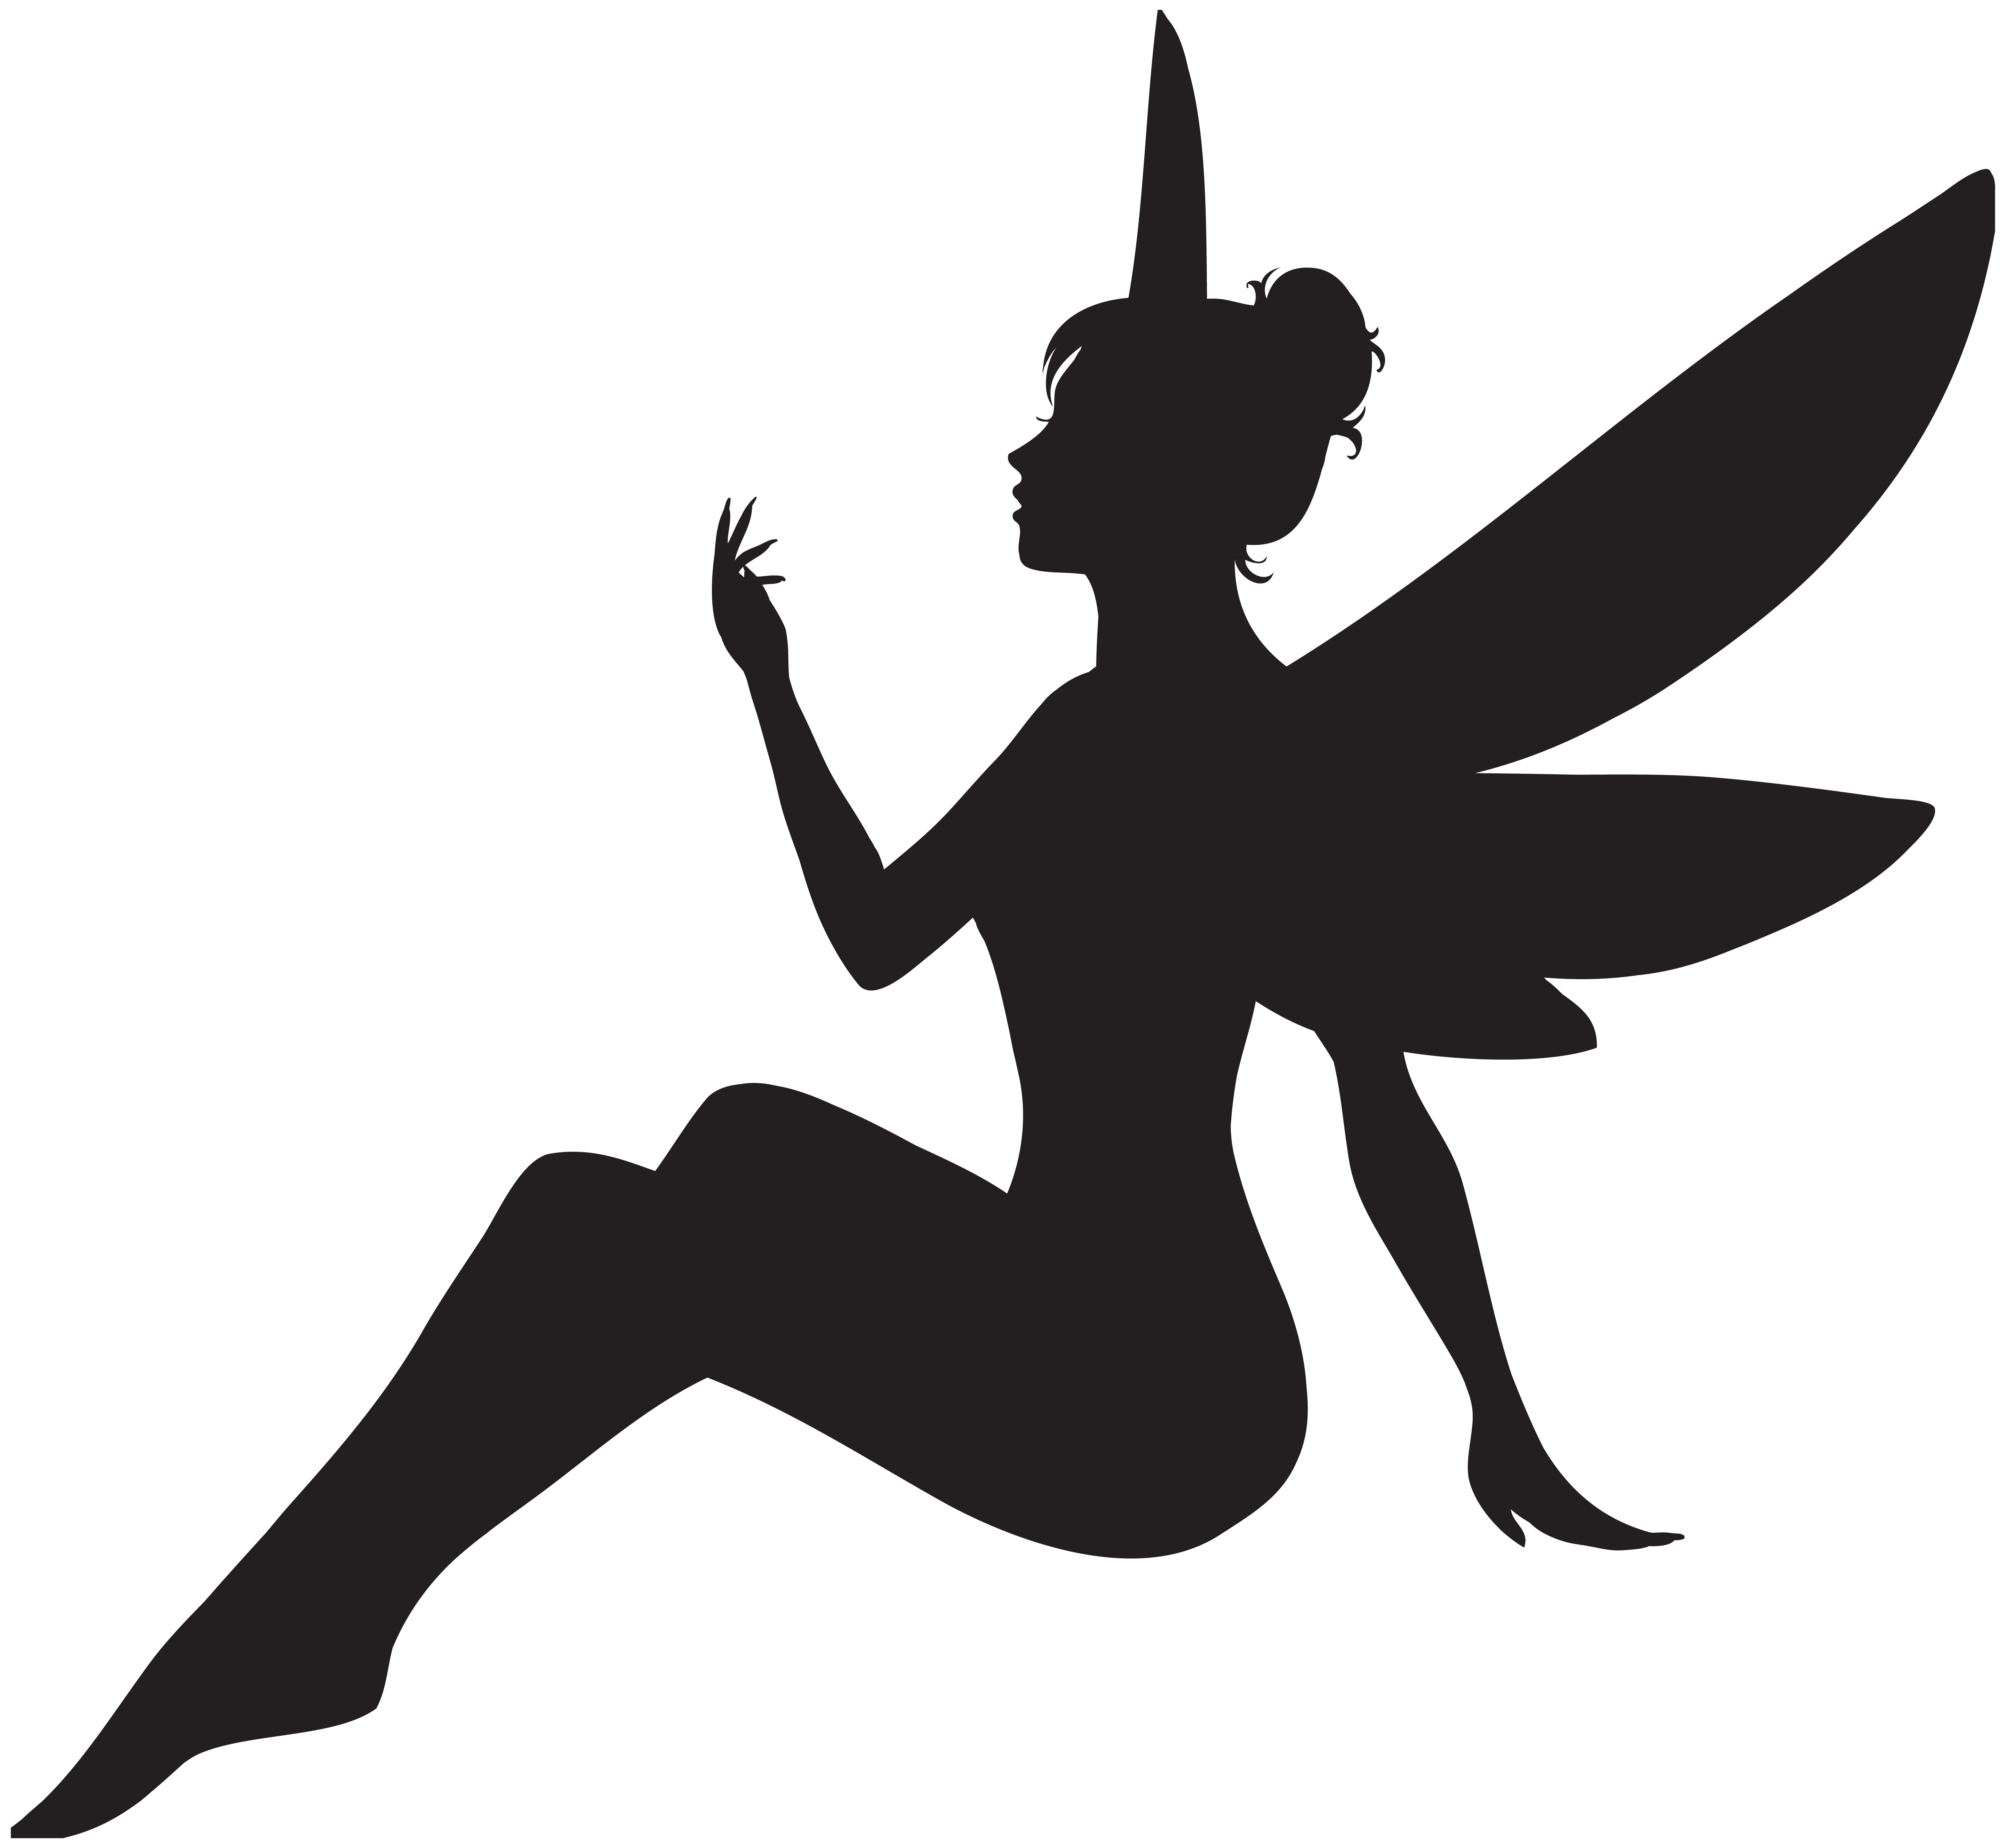 Tooth fairy Silhouette Clip art.